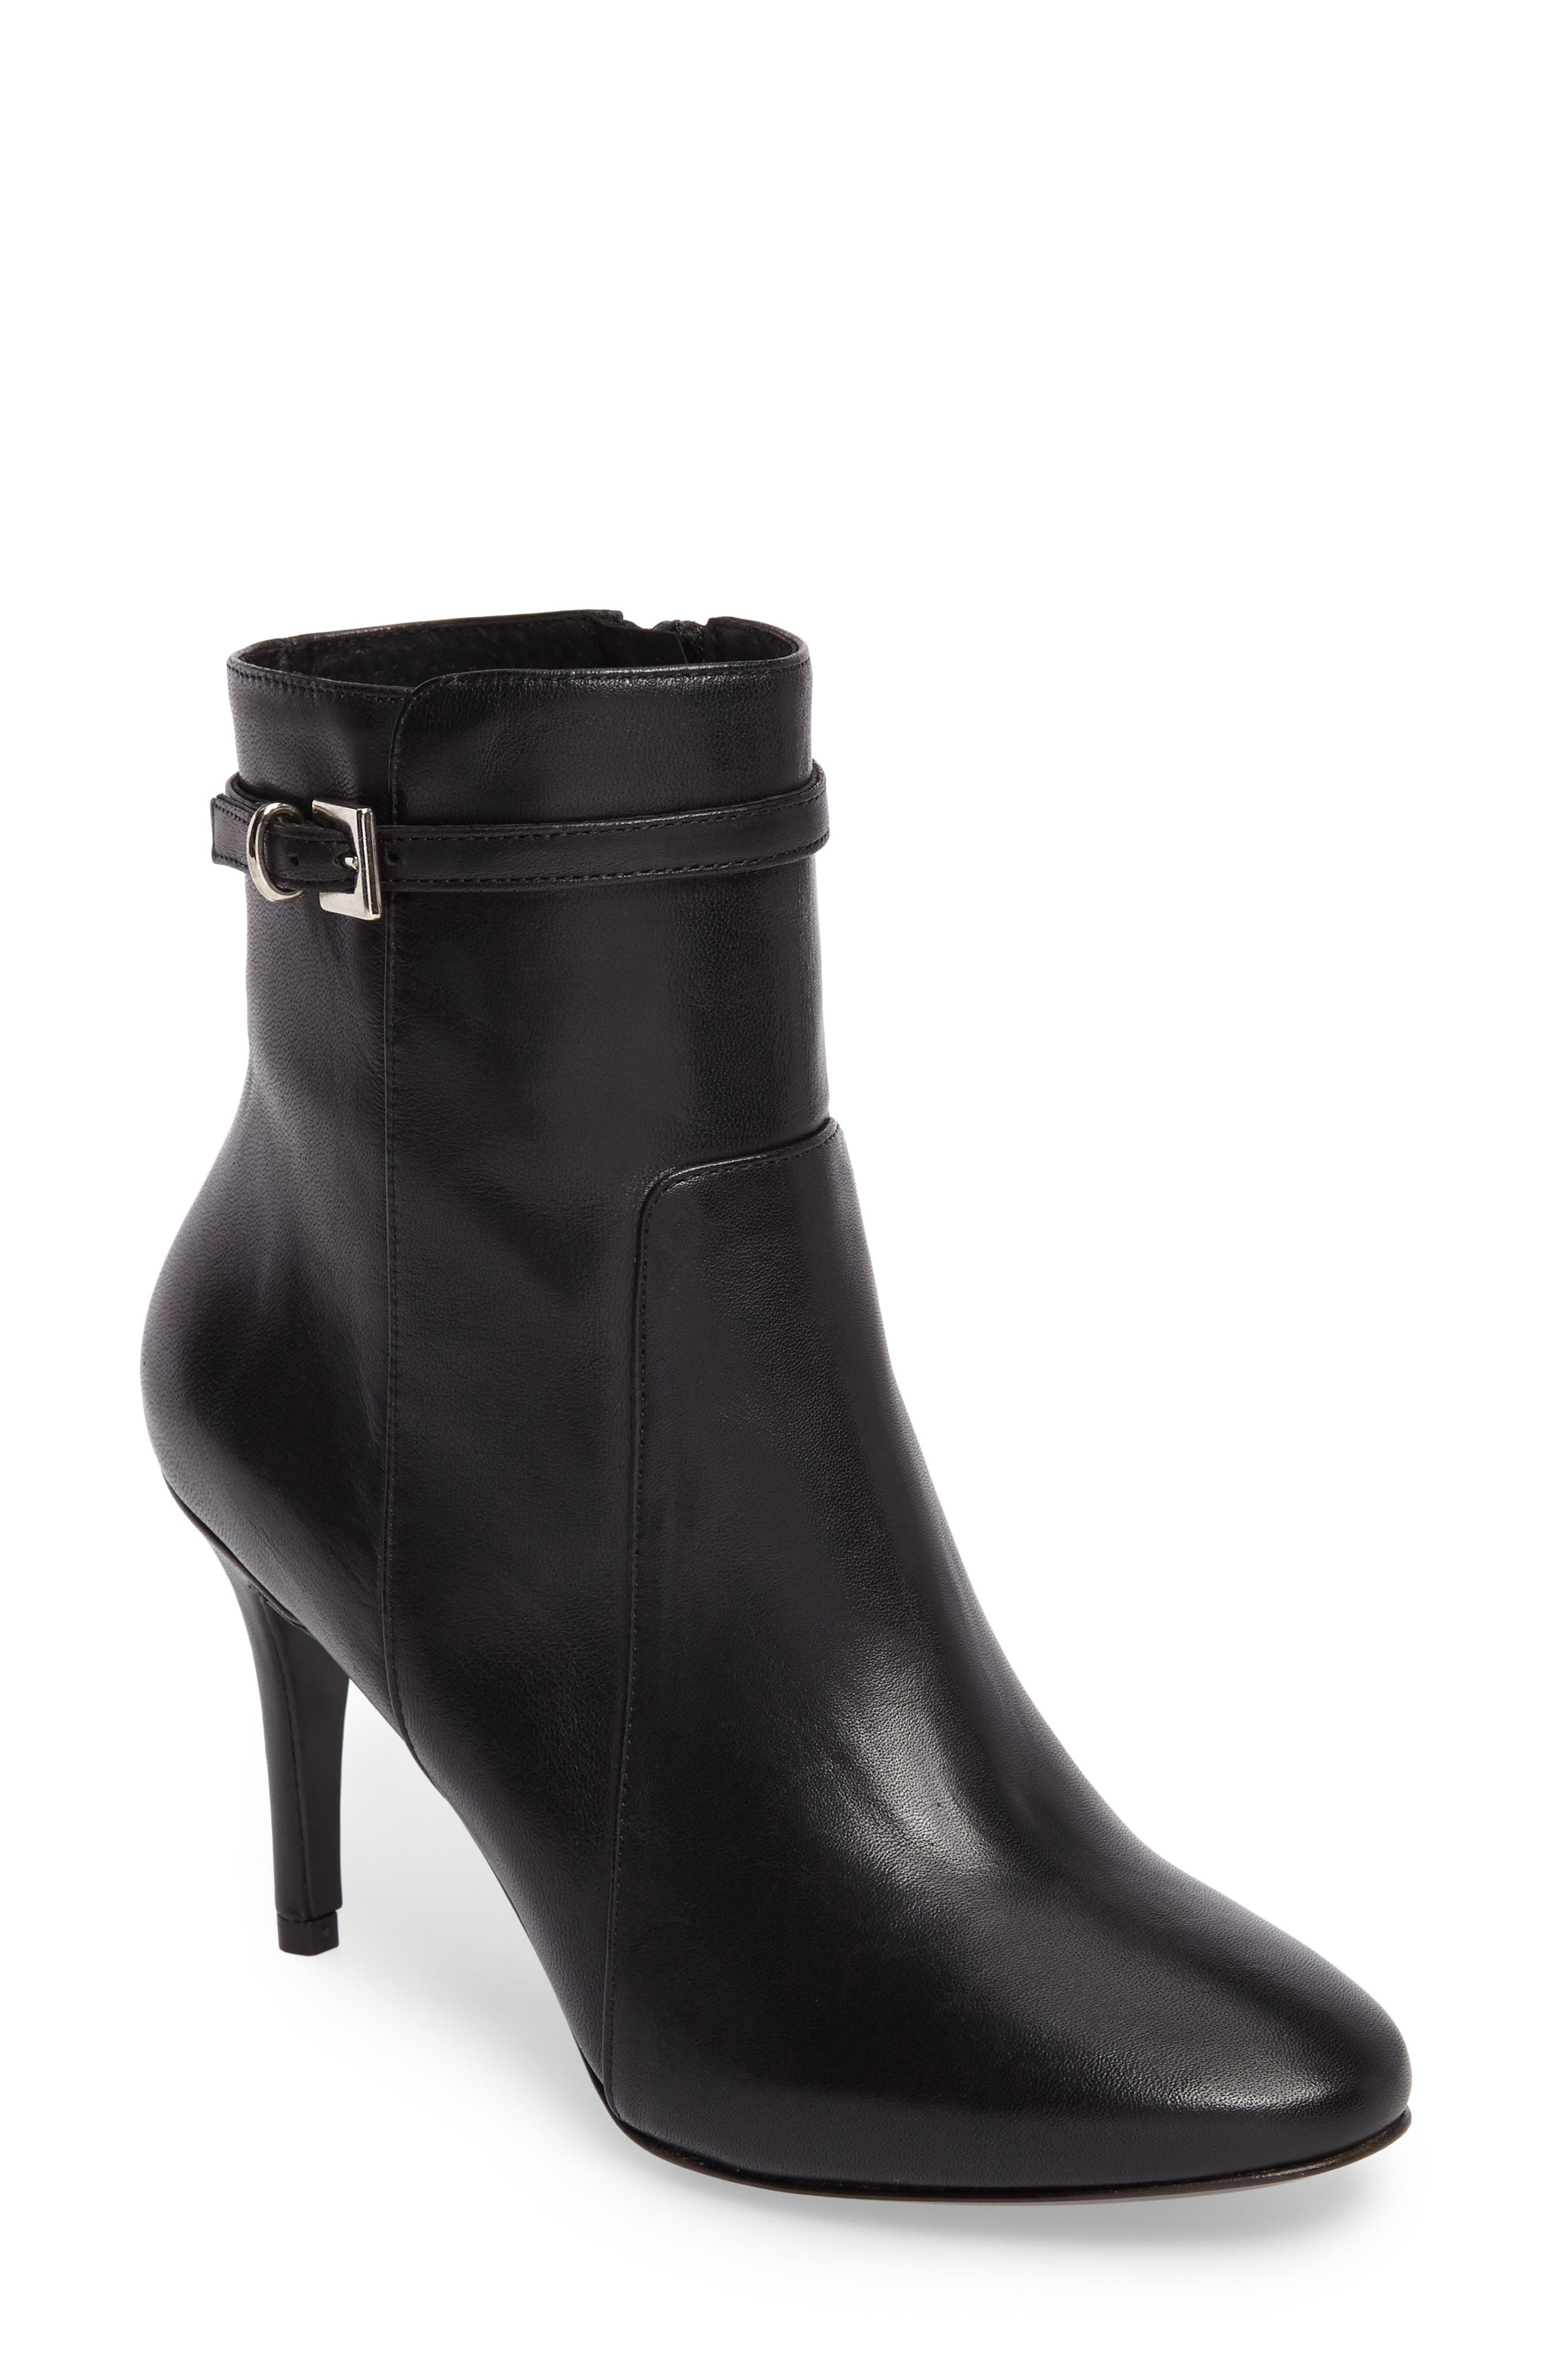 Prism Buckle Strap Bootie,                         Main,                         color, 001